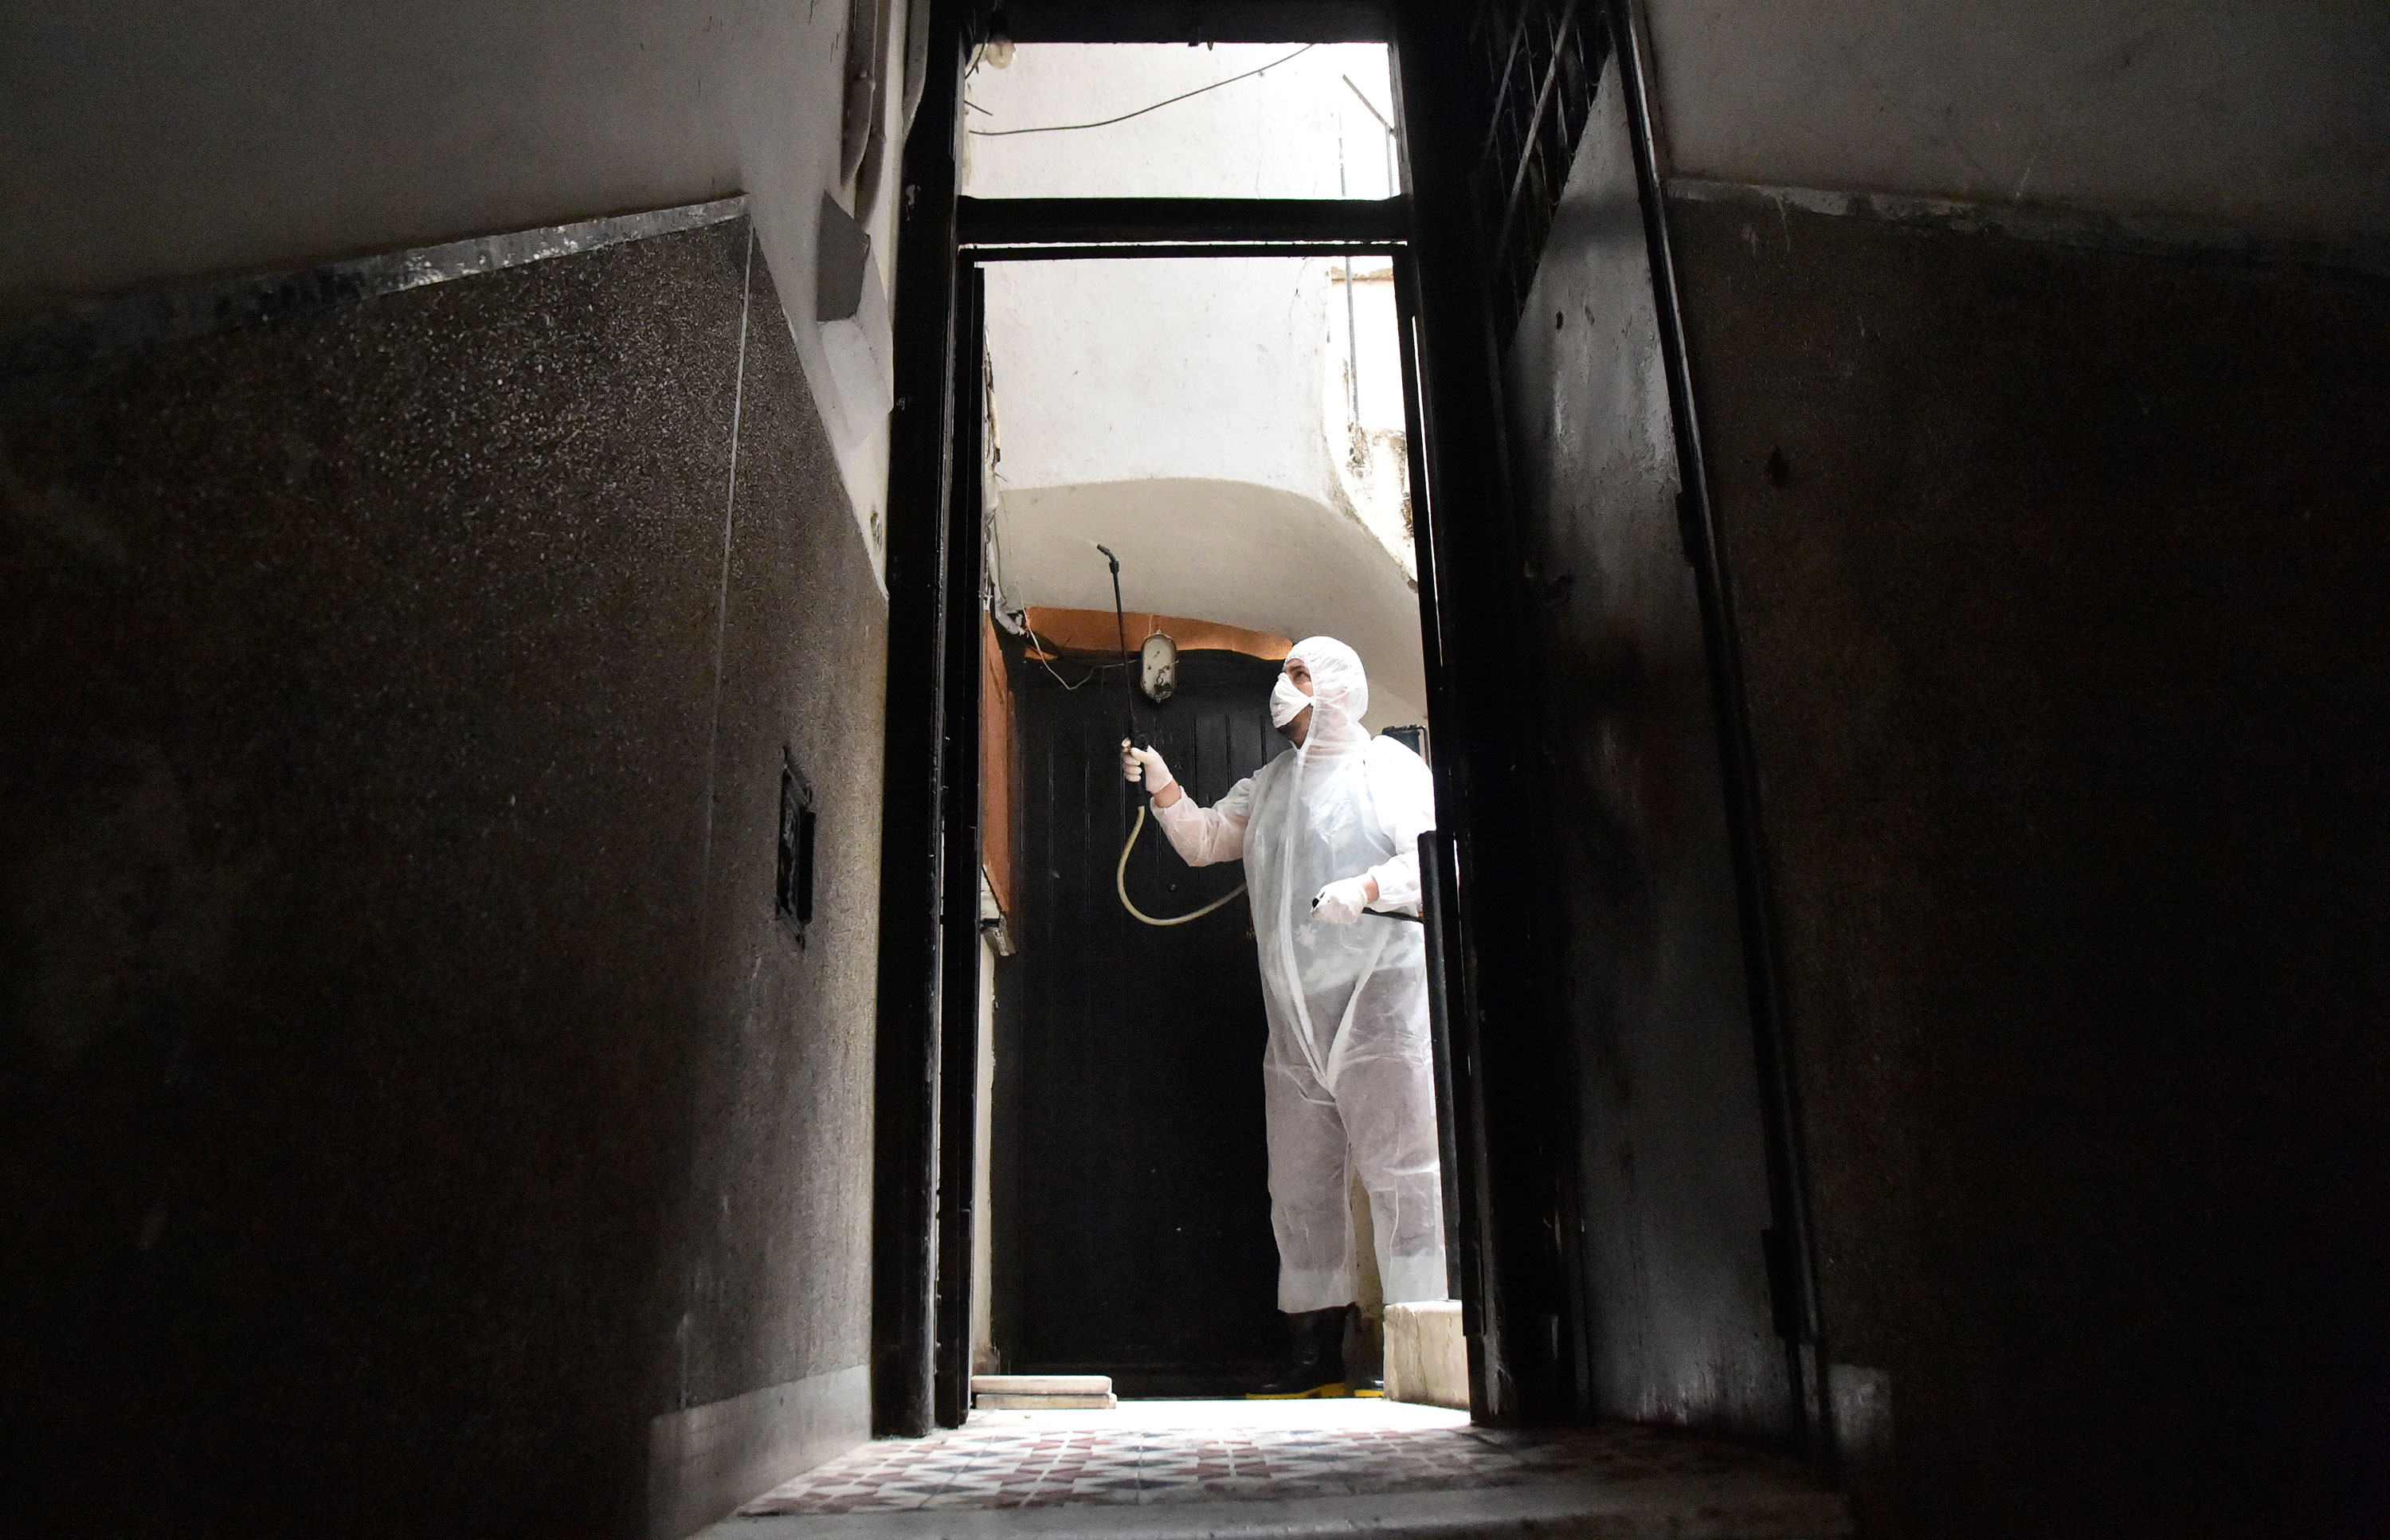 A worker disinfects a building in Algiers, Algeria on March 20.